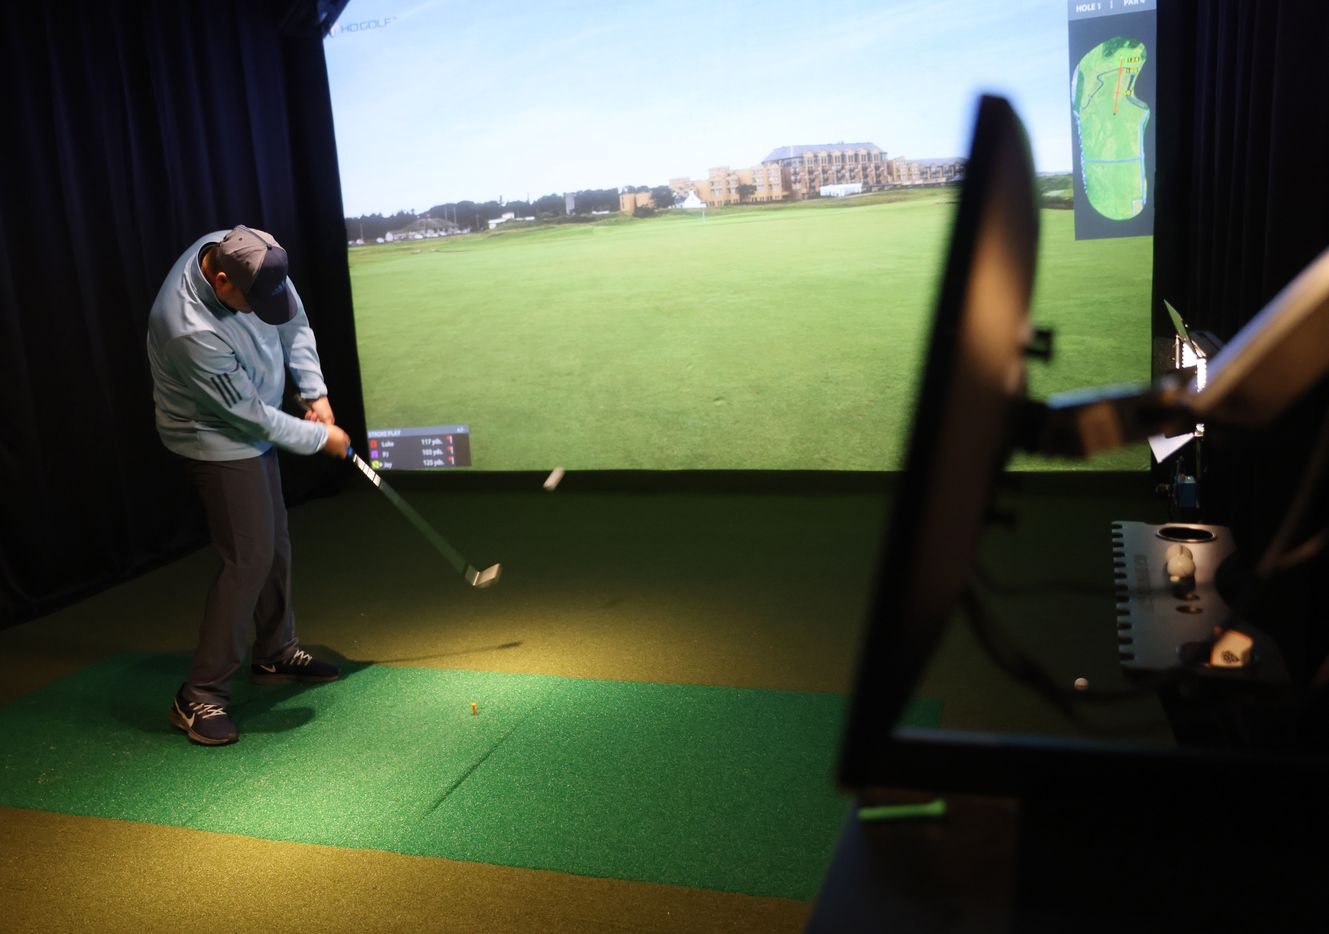 Jay Bivin plays virtual golf in one of five simulators at Daylight Golf on Thursday, January 21, 2021in Grapevine, Texas.